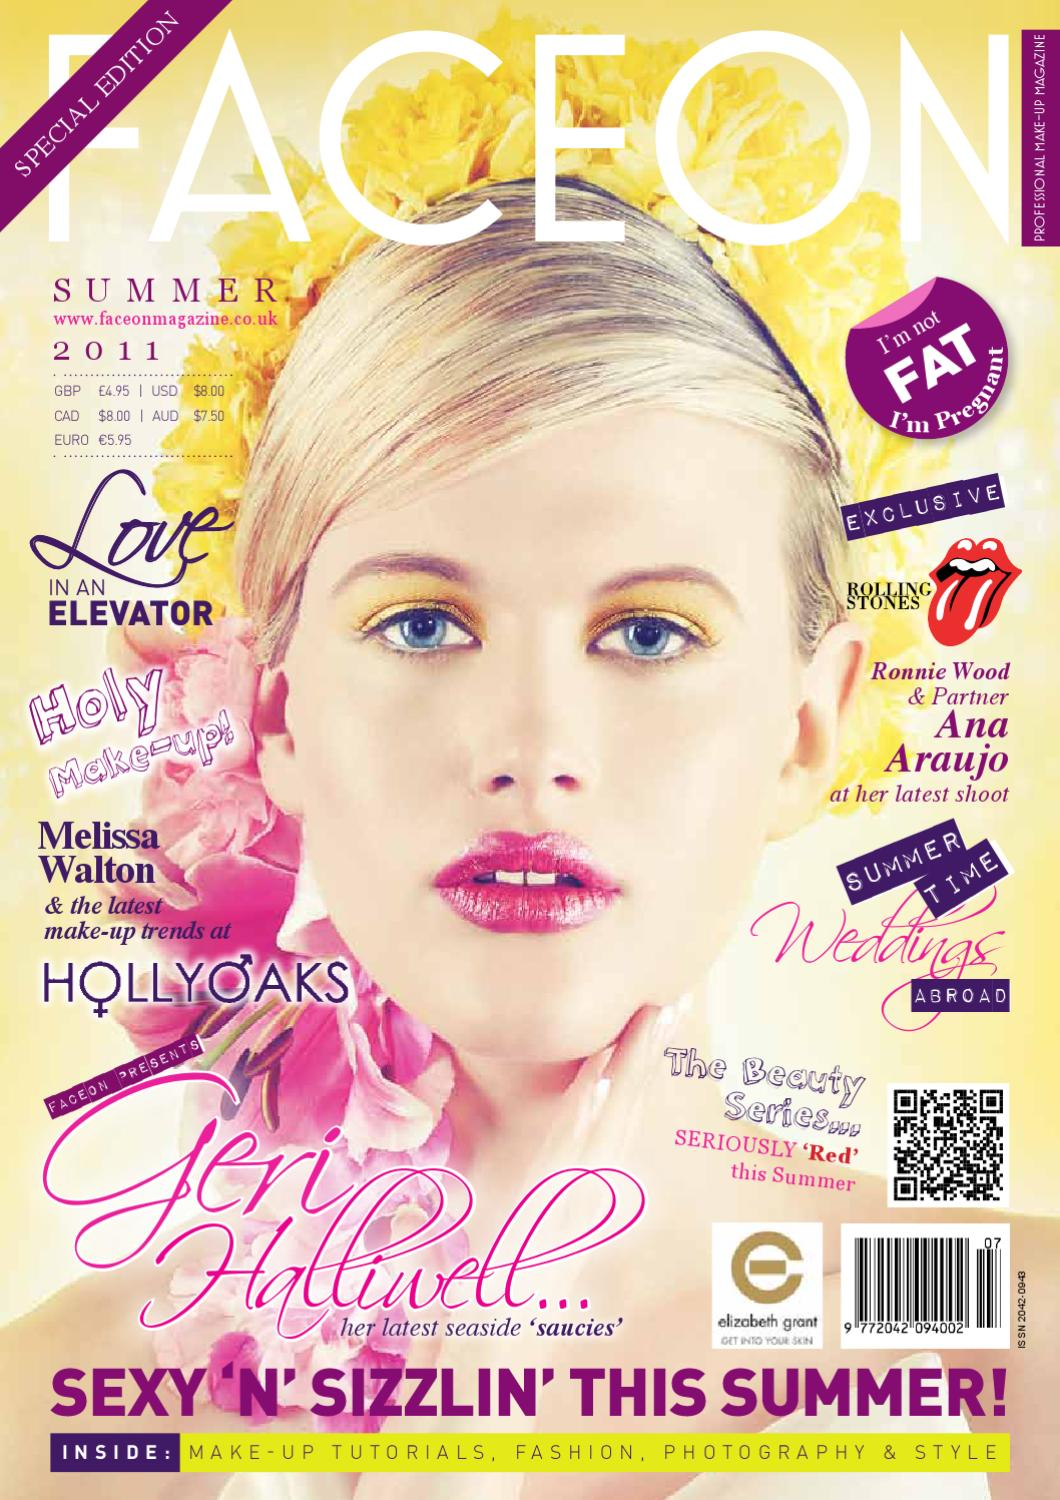 c6e4713a2 FACEON Magazine - ISSUE 7 Teaser! by FACEON Magazine Ltd - issuu